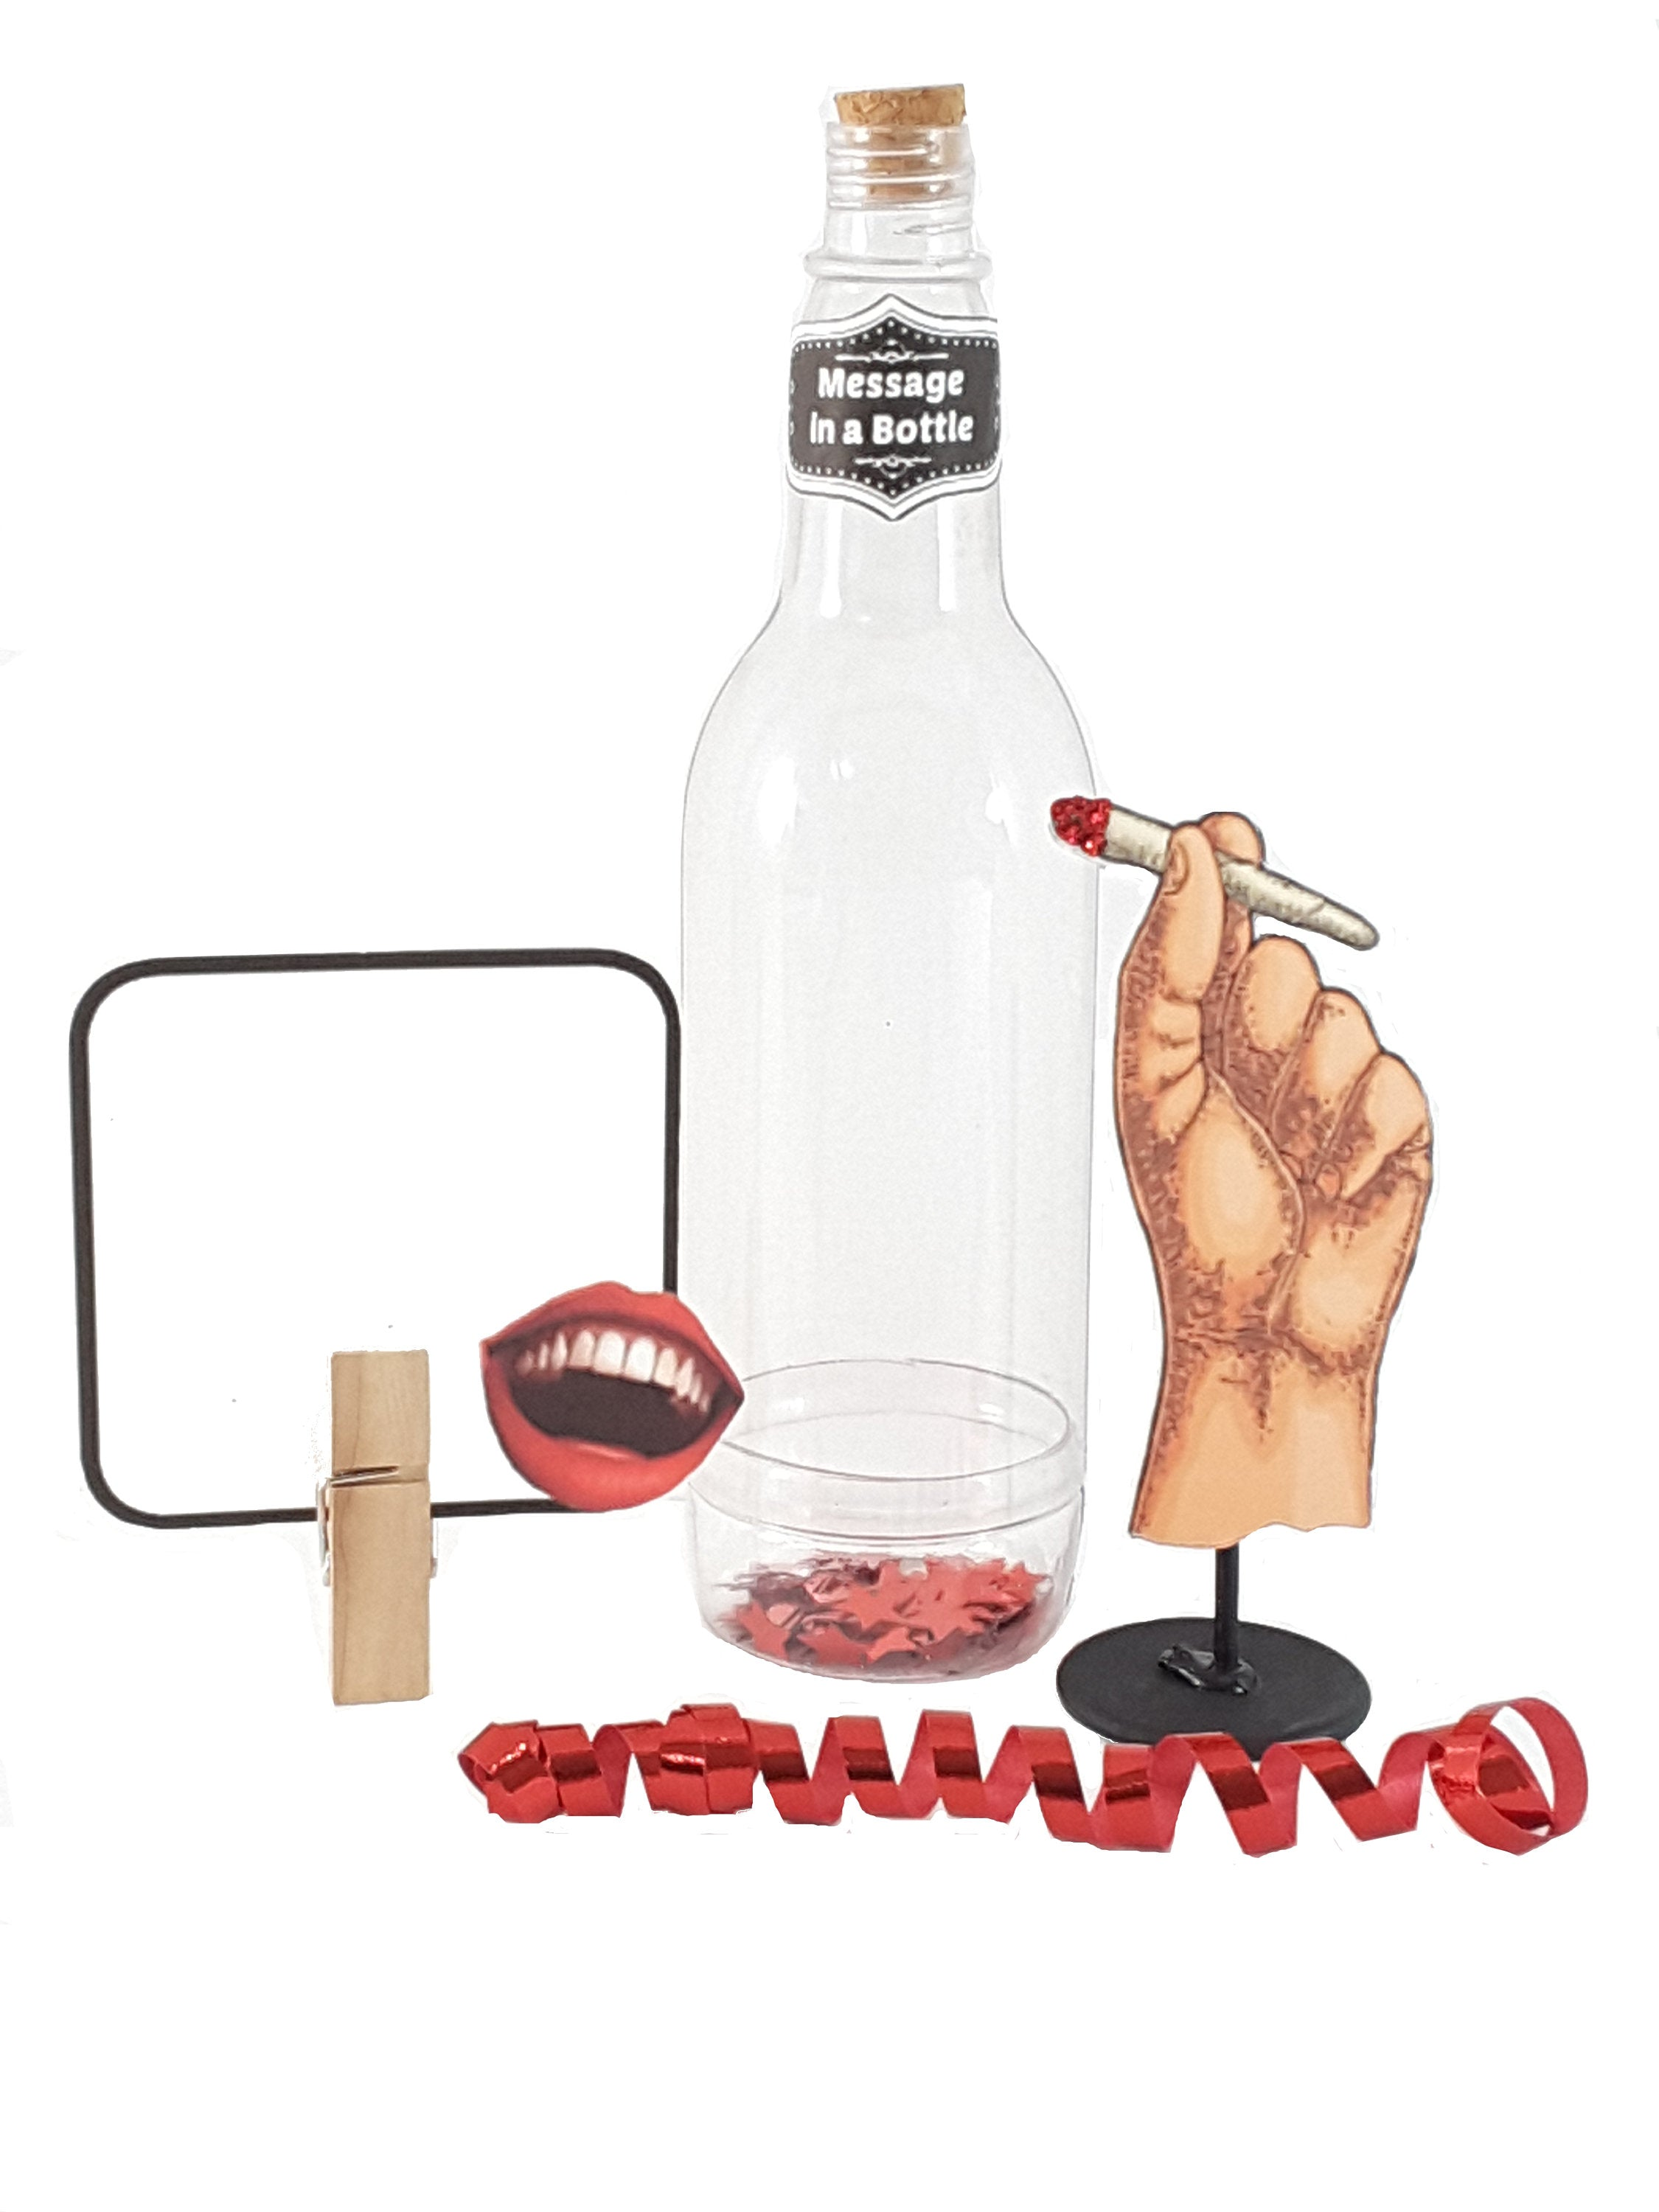 Personalized Message in a Bottle featuring Stand Up Vintage Hand Holding a Doobie - TheLastWordBish.com